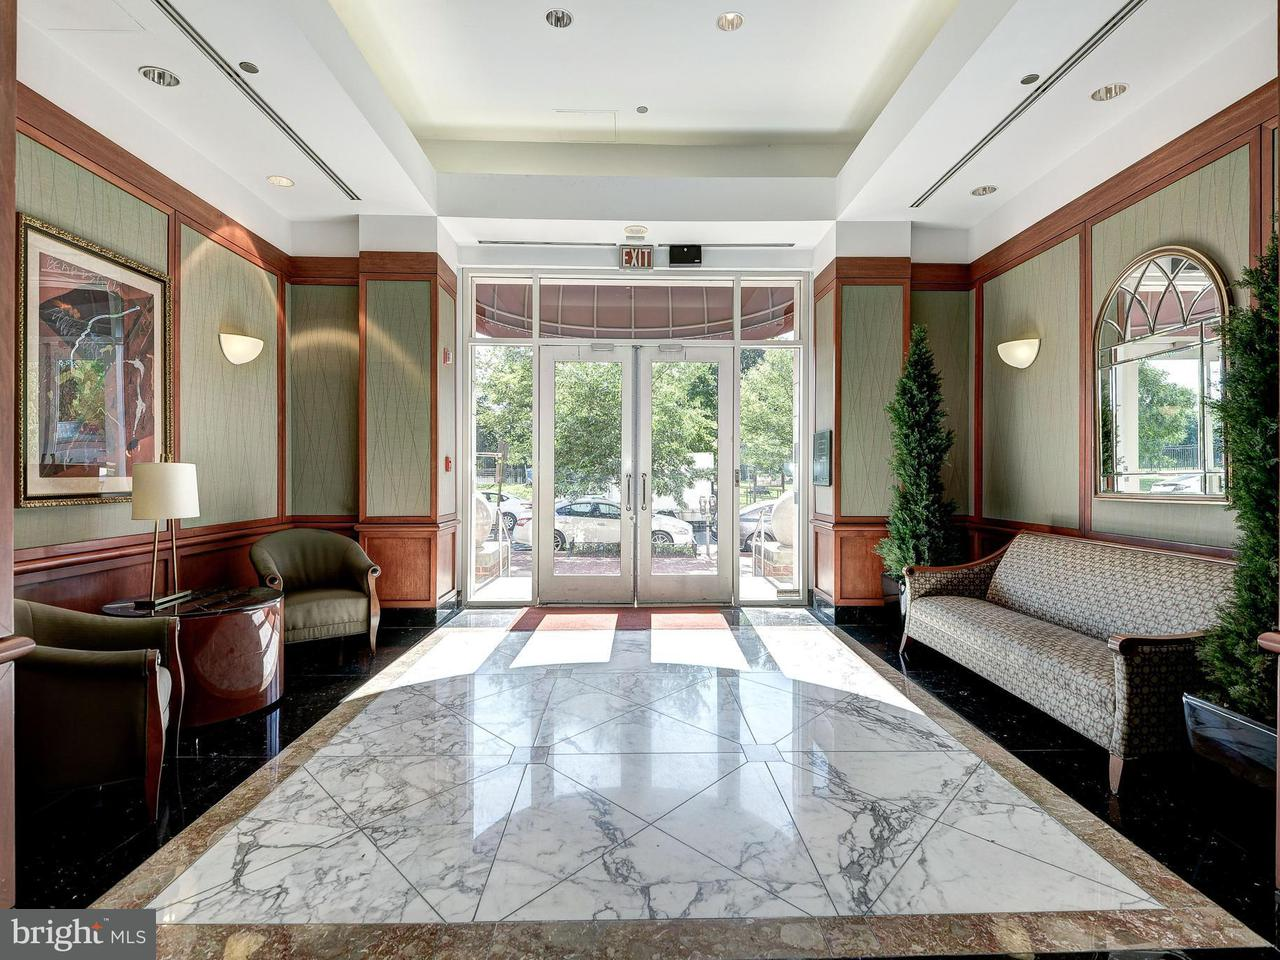 Condominium for Rent at 1275 25th St NW #600 Washington, District Of Columbia 20037 United States